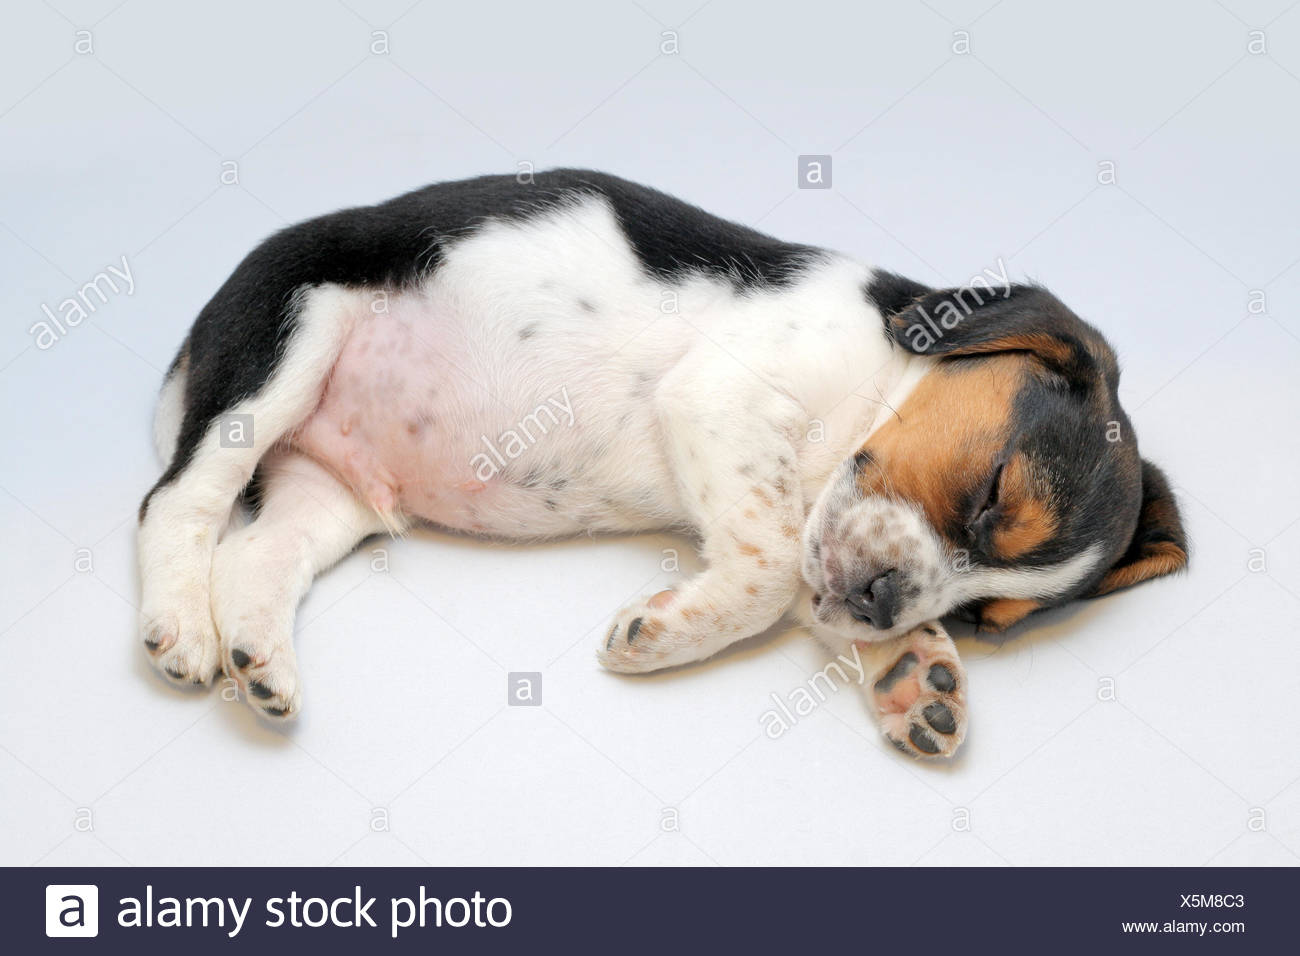 Cute tricolor beagle puppy sleeping on the white background - Stock Image